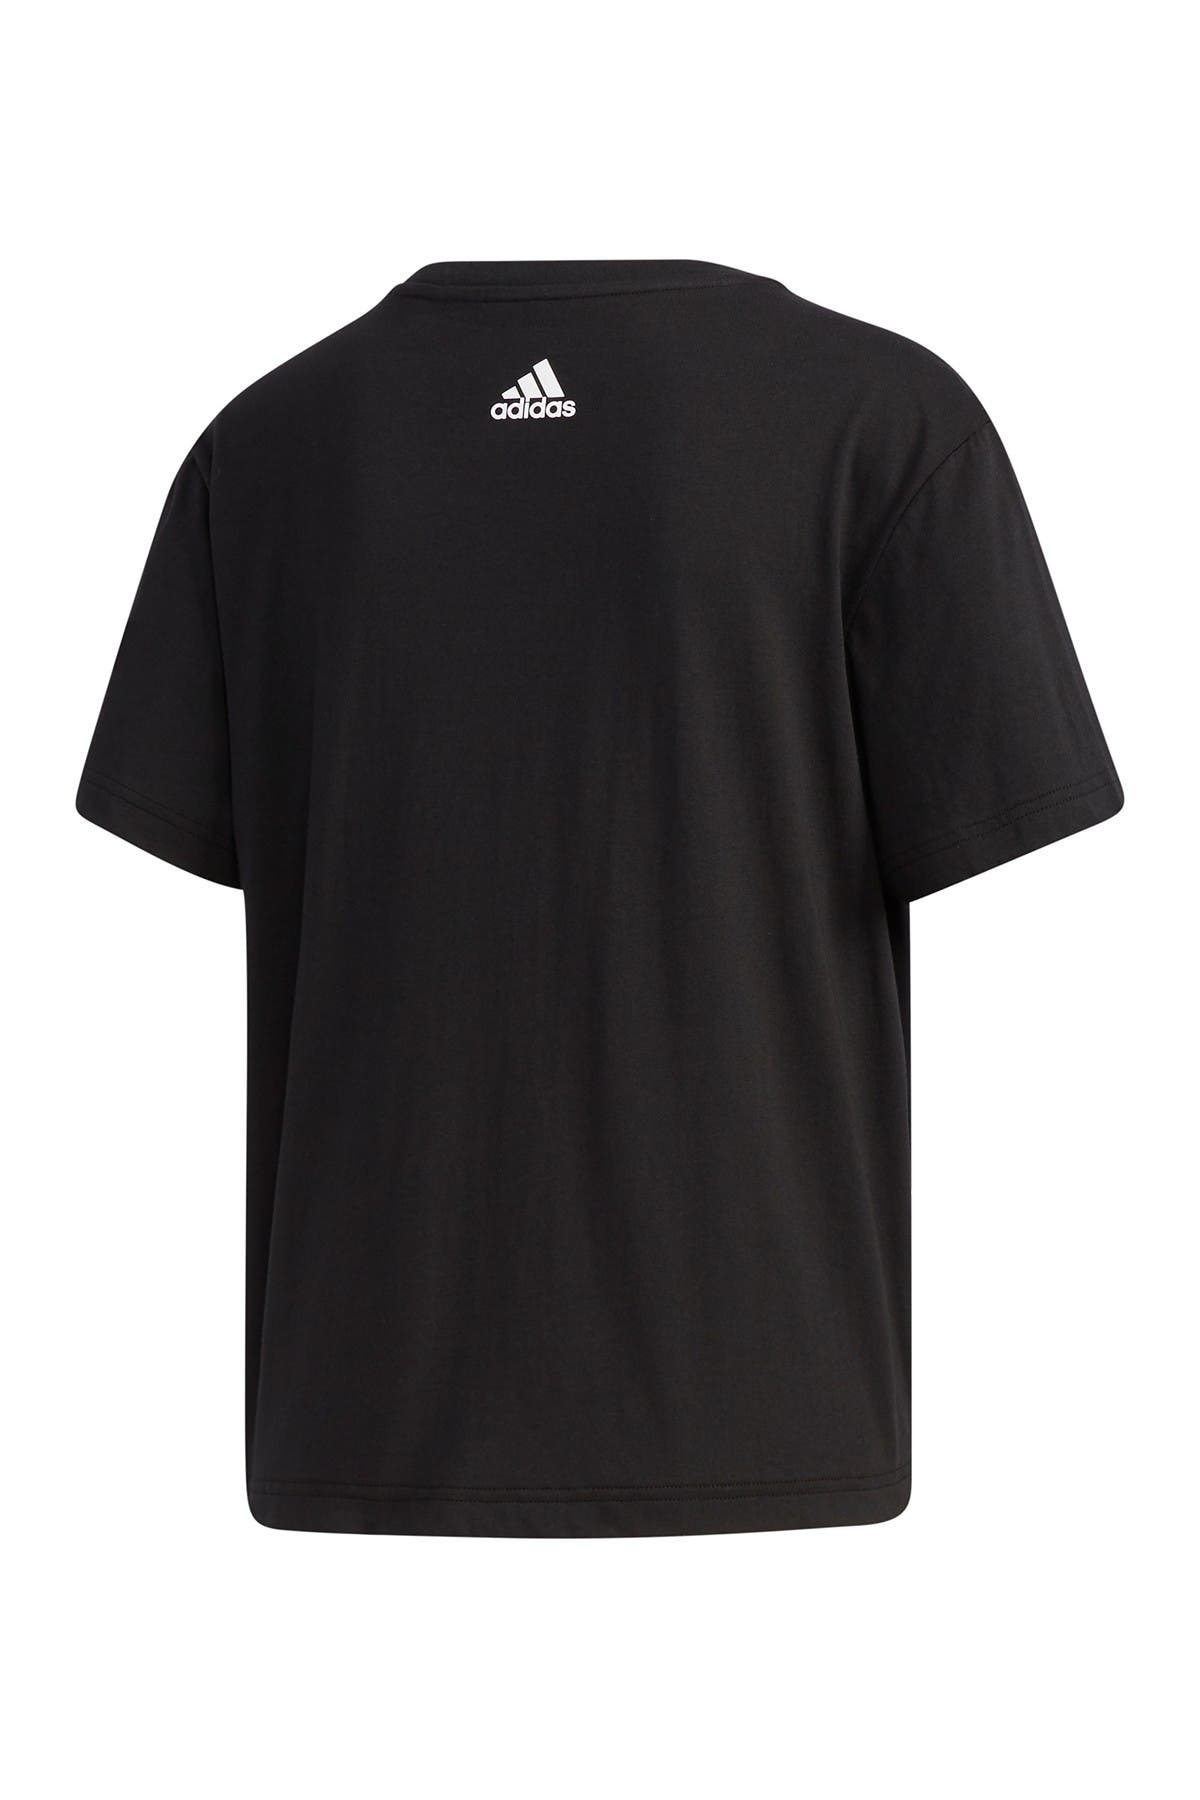 Image of adidas Brand Print Short Sleeve T-Shirt